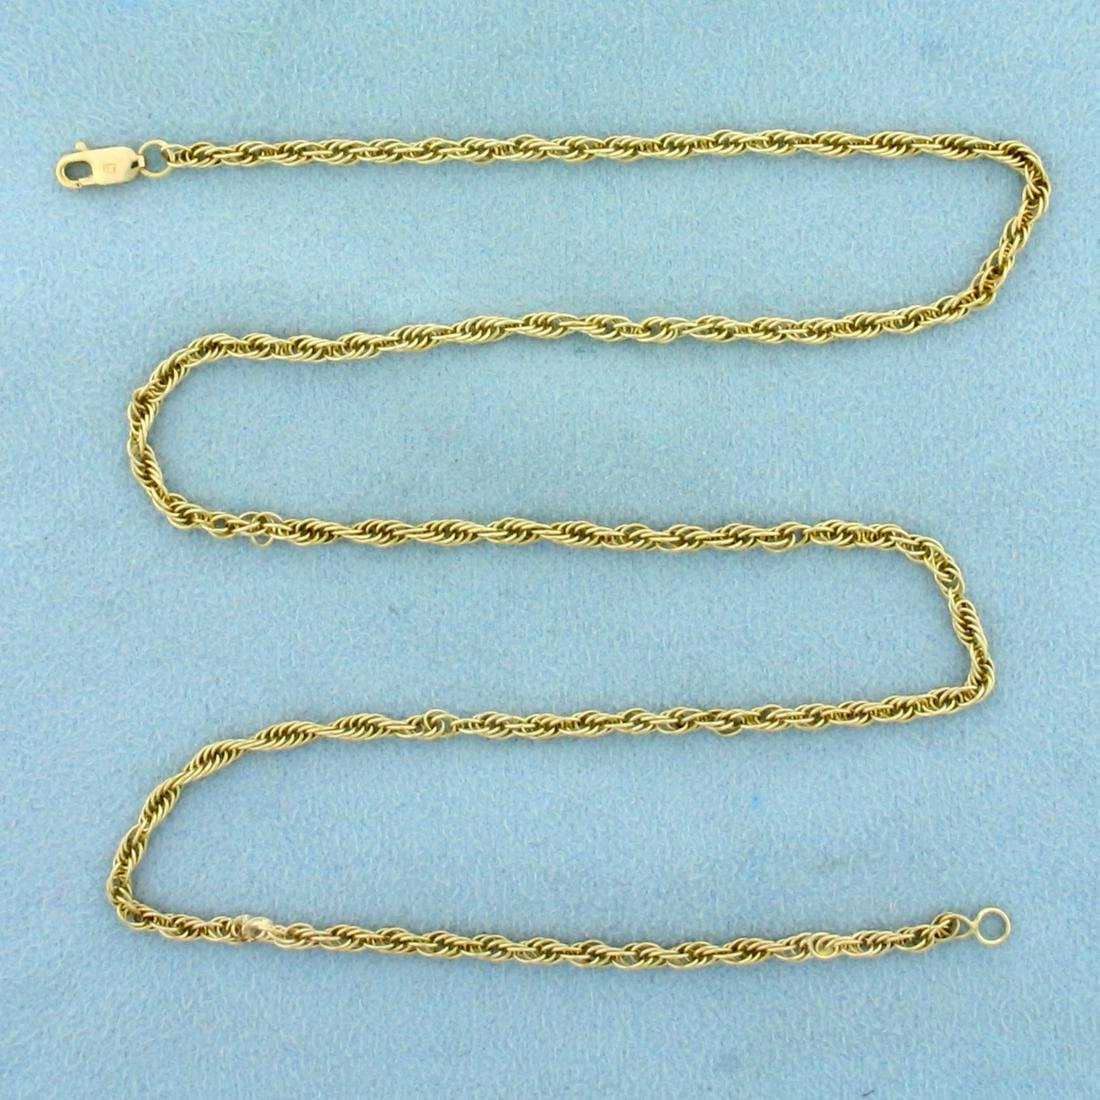 17 1/2 Inch Rope Style Chain Necklace in 14K Yellow